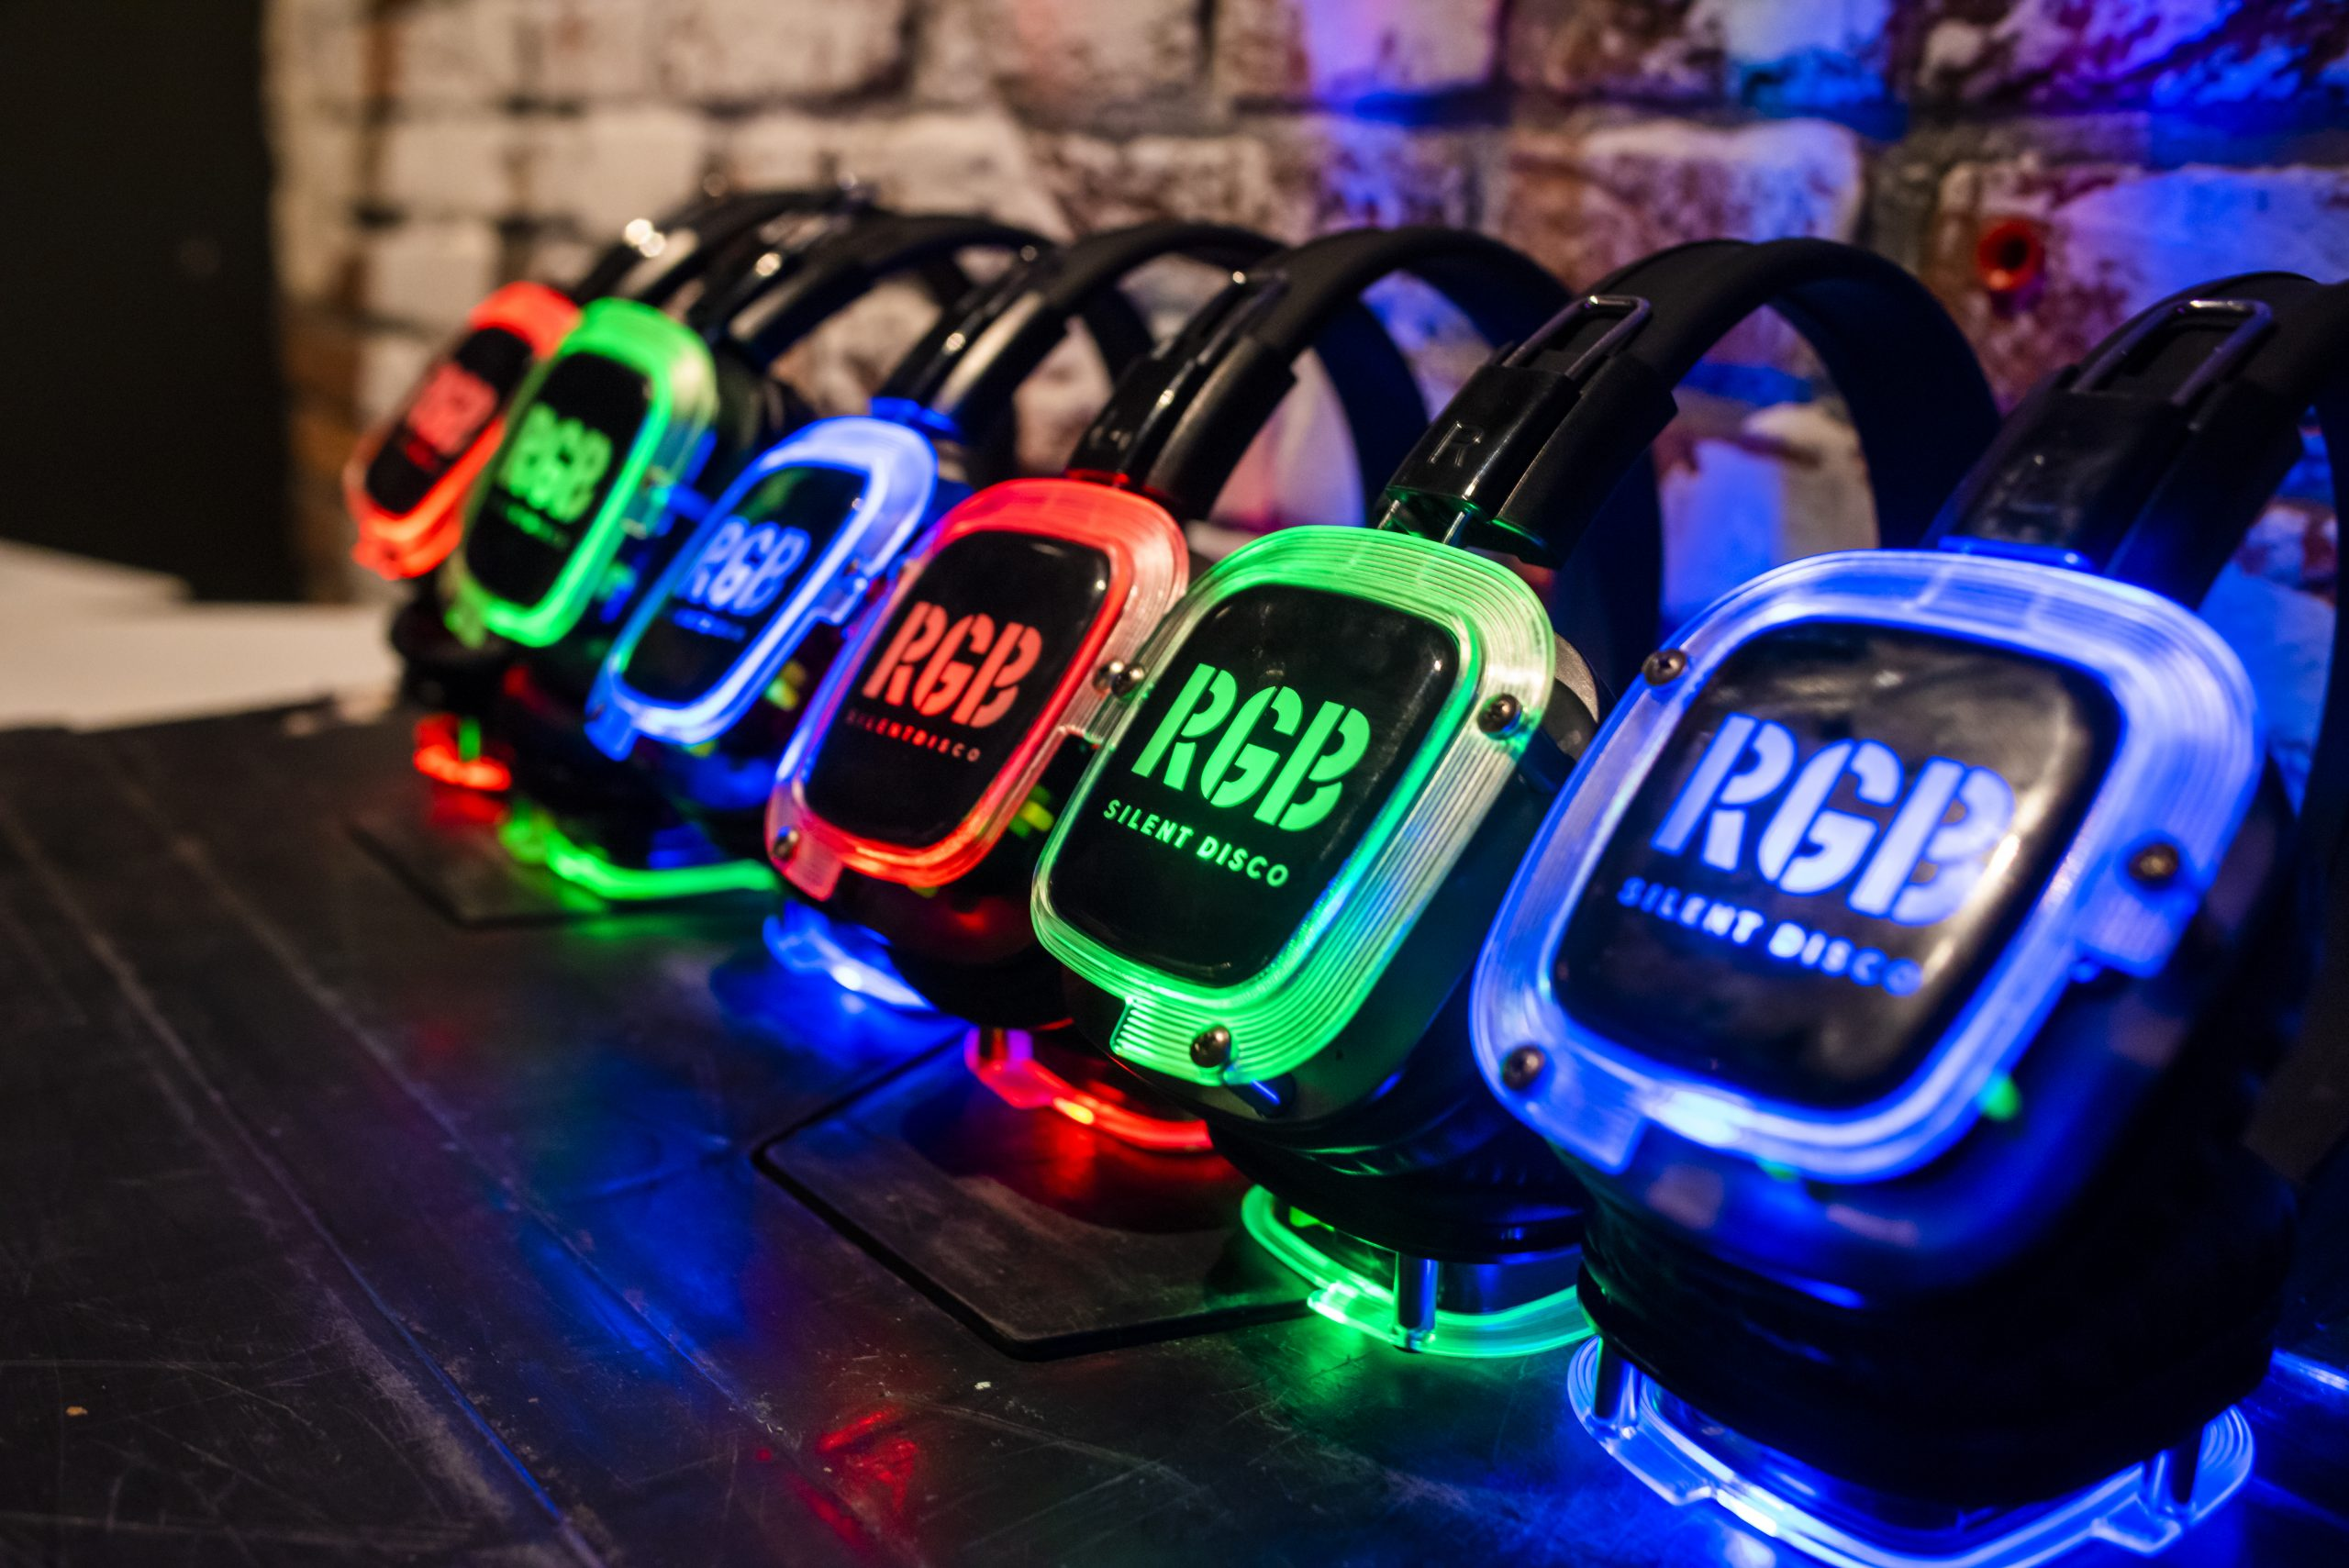 20191005_unclebuck-silentdisco-001